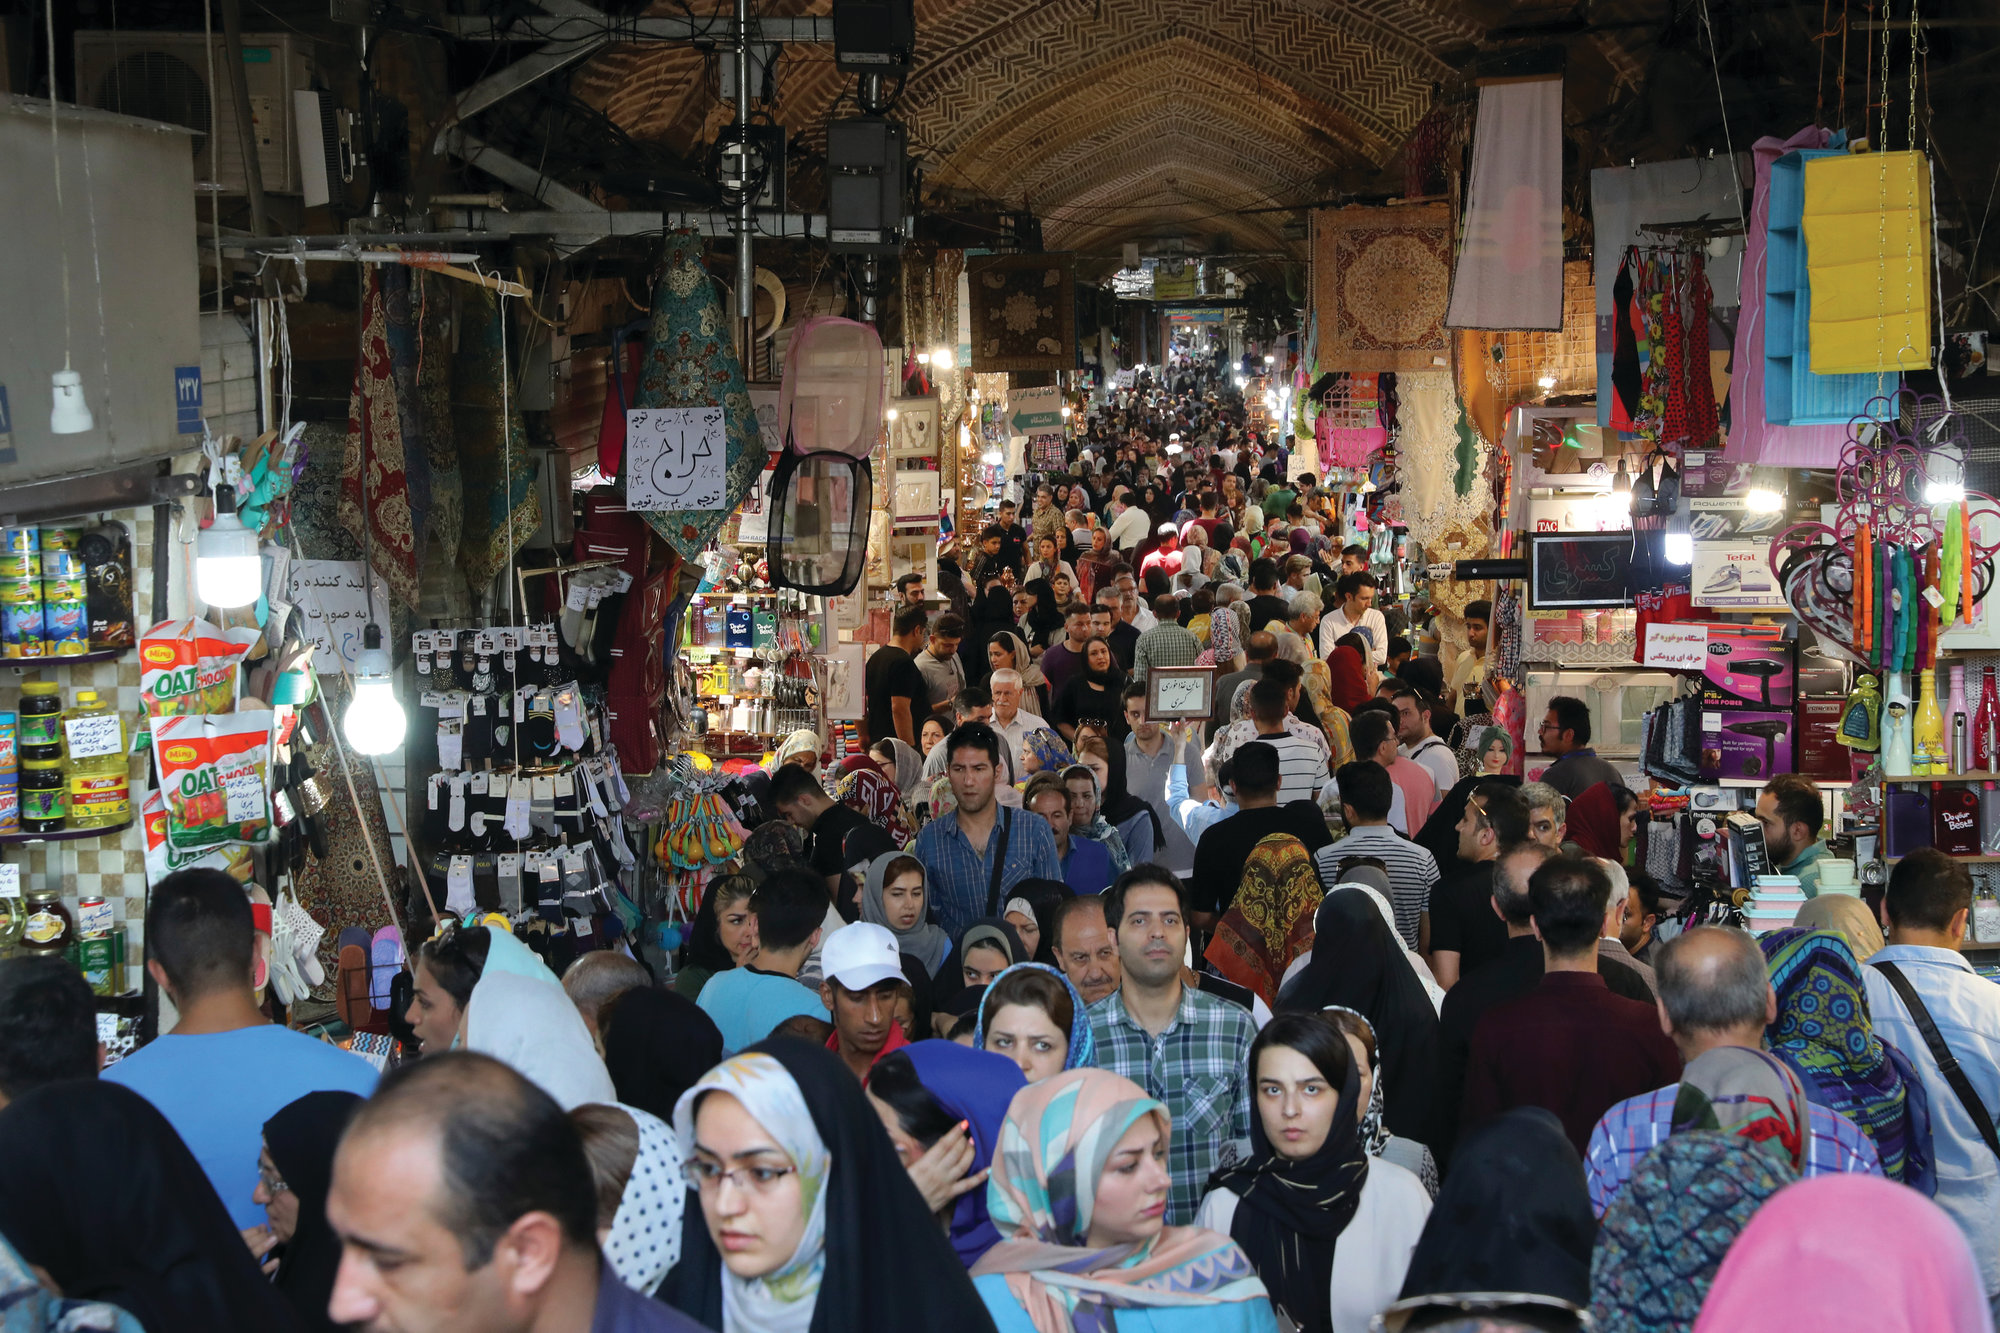 THE ASSOCIATED PRESS  People shop at the old main bazaar in Tehran, Iran, on Sunday. As the U.S. piles sanction after sanction on Iran, it's the average person who feels it the most.